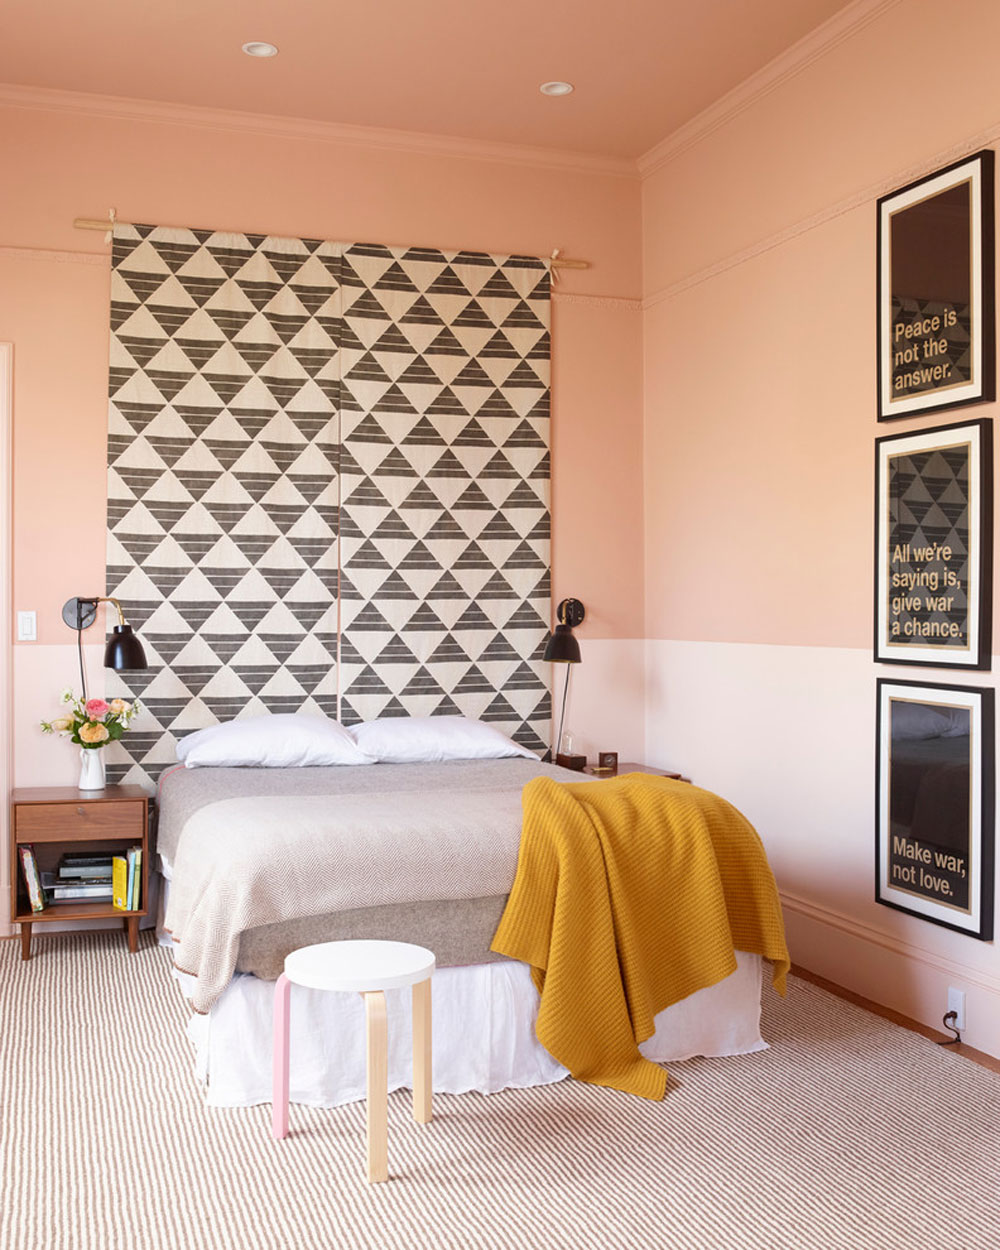 Castro-residence-by-the-office-of-Charles-de-Lisle Use the peach color to decorate amazing interiors